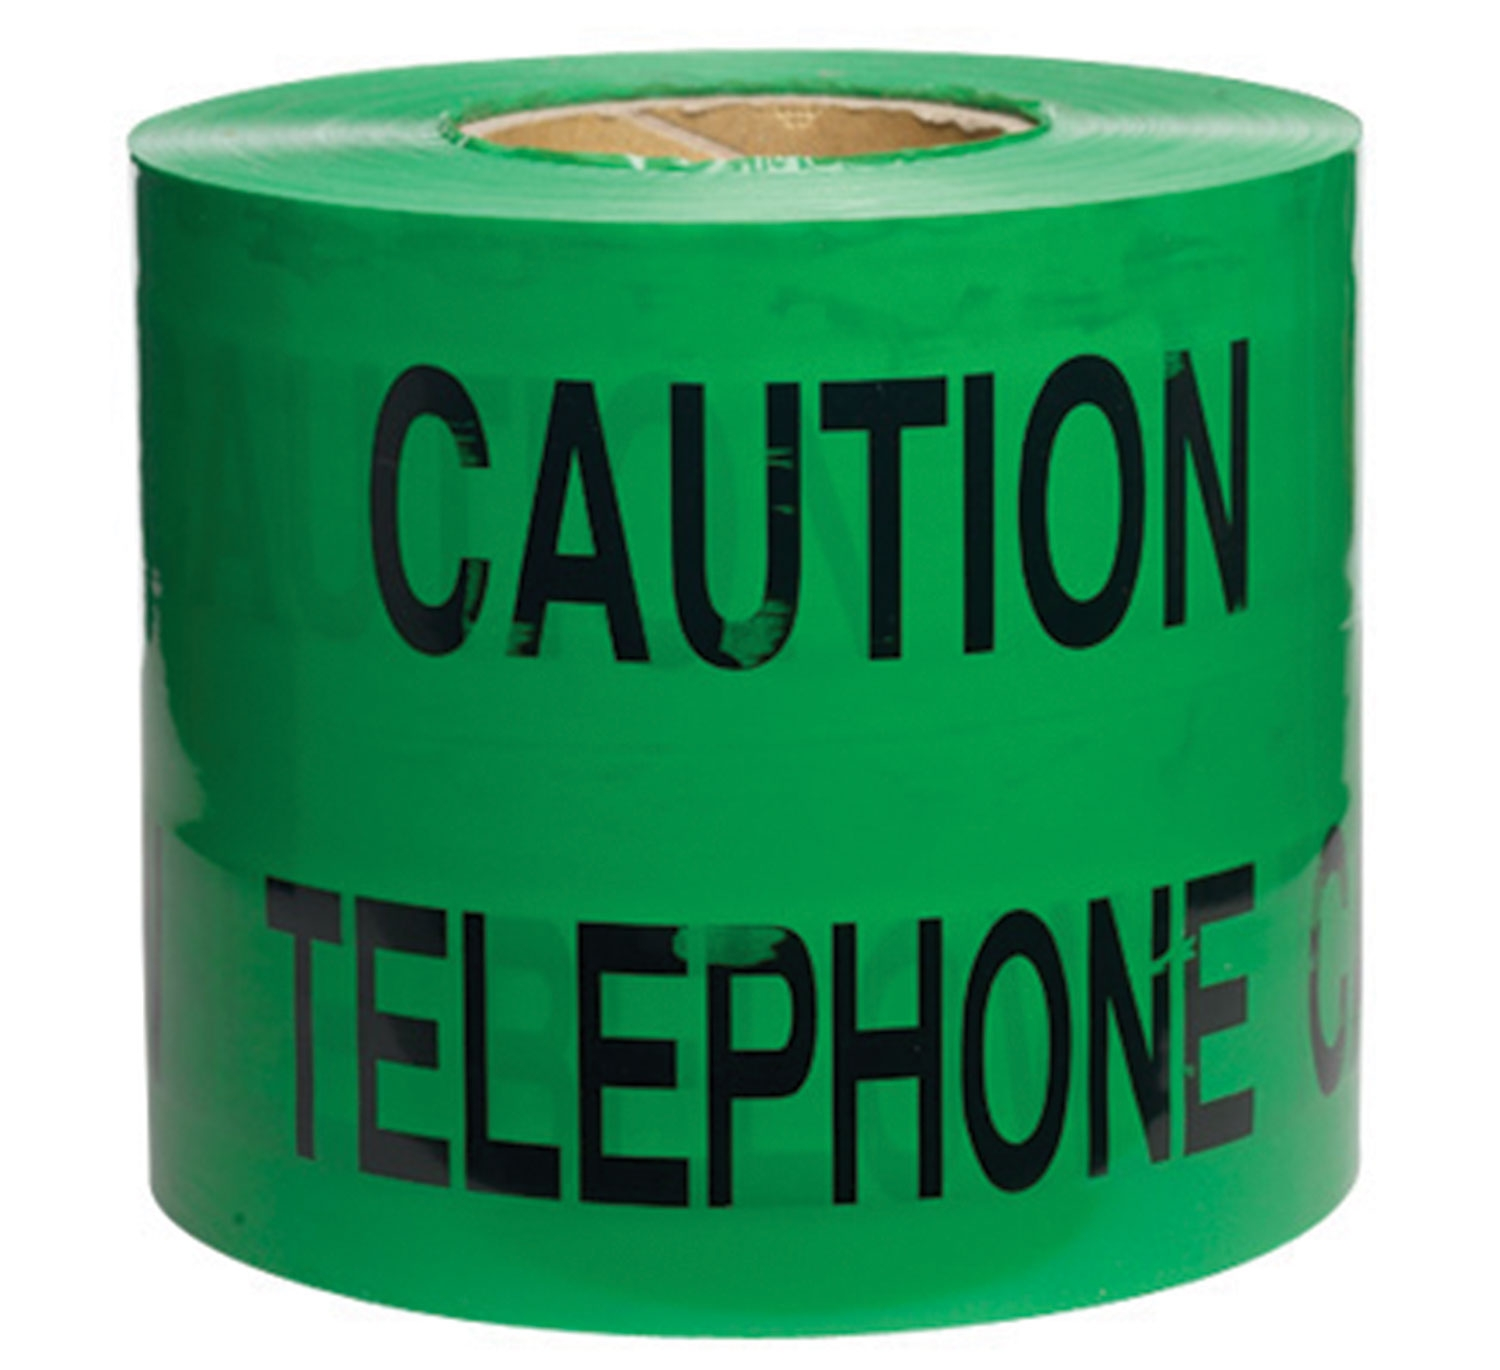 150mm x 365M Underground Tape Caution Telephone Cable